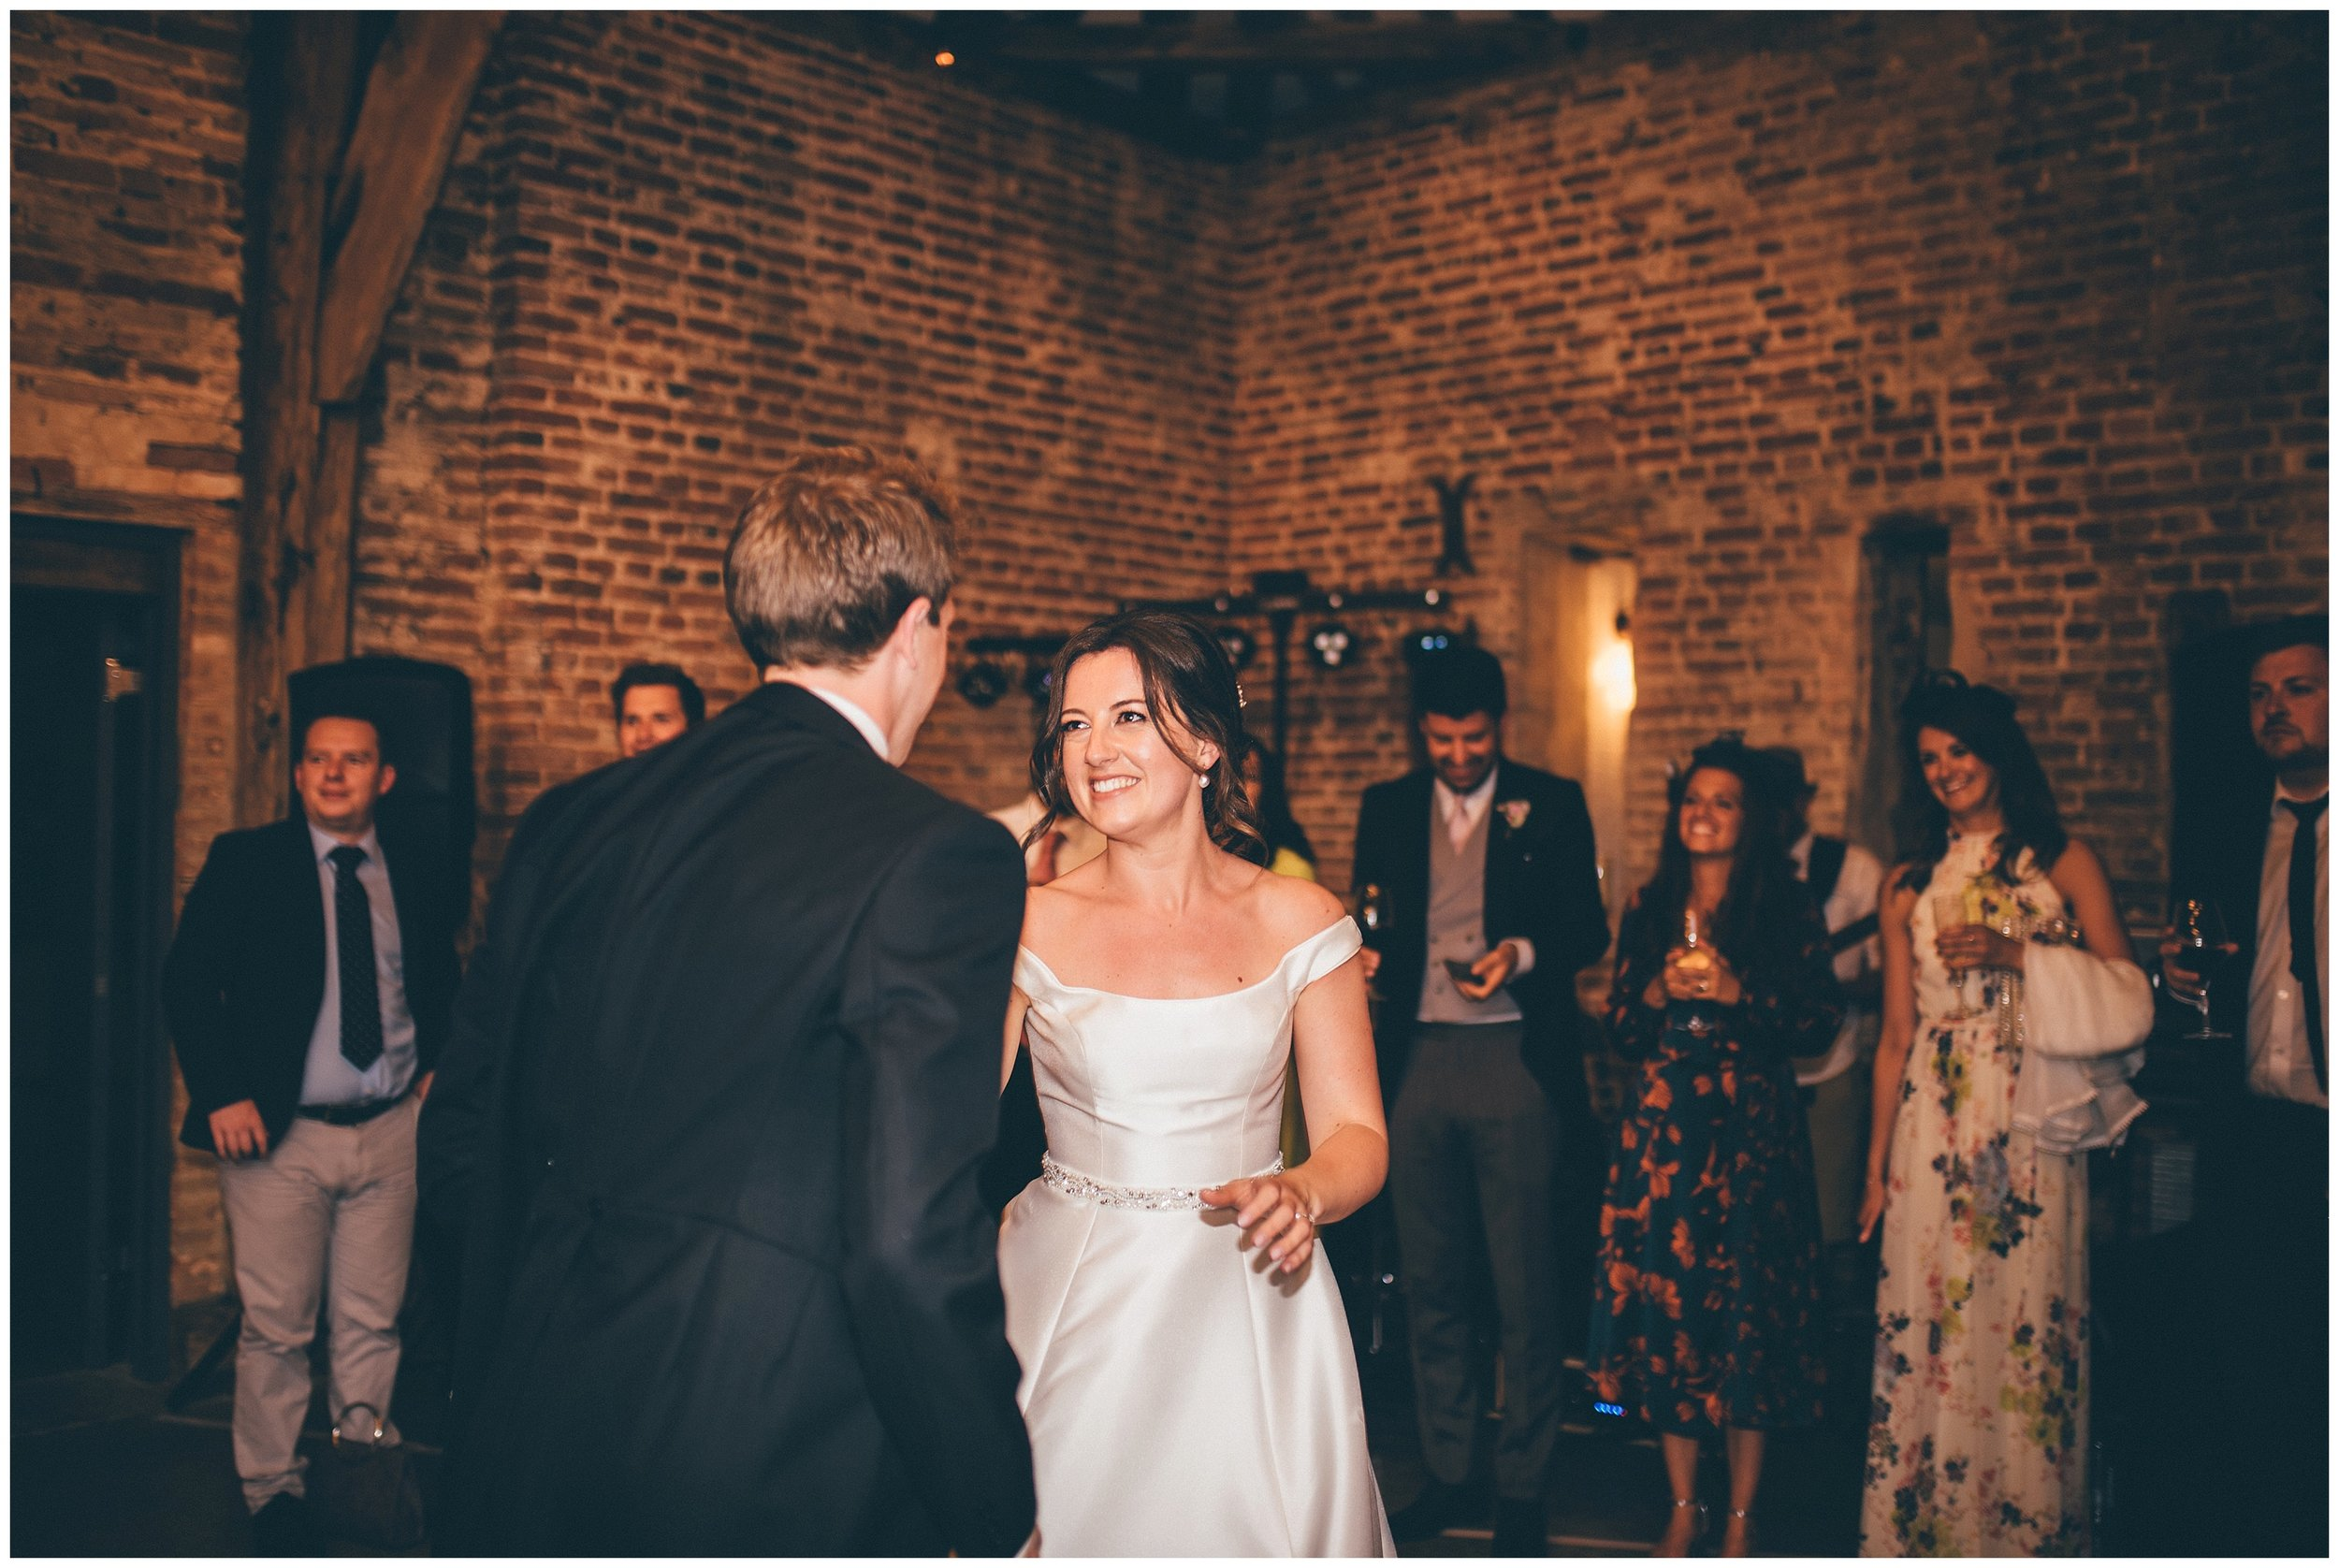 Bride and groom's First Dance at Henham Park wedding barns in Southwold.